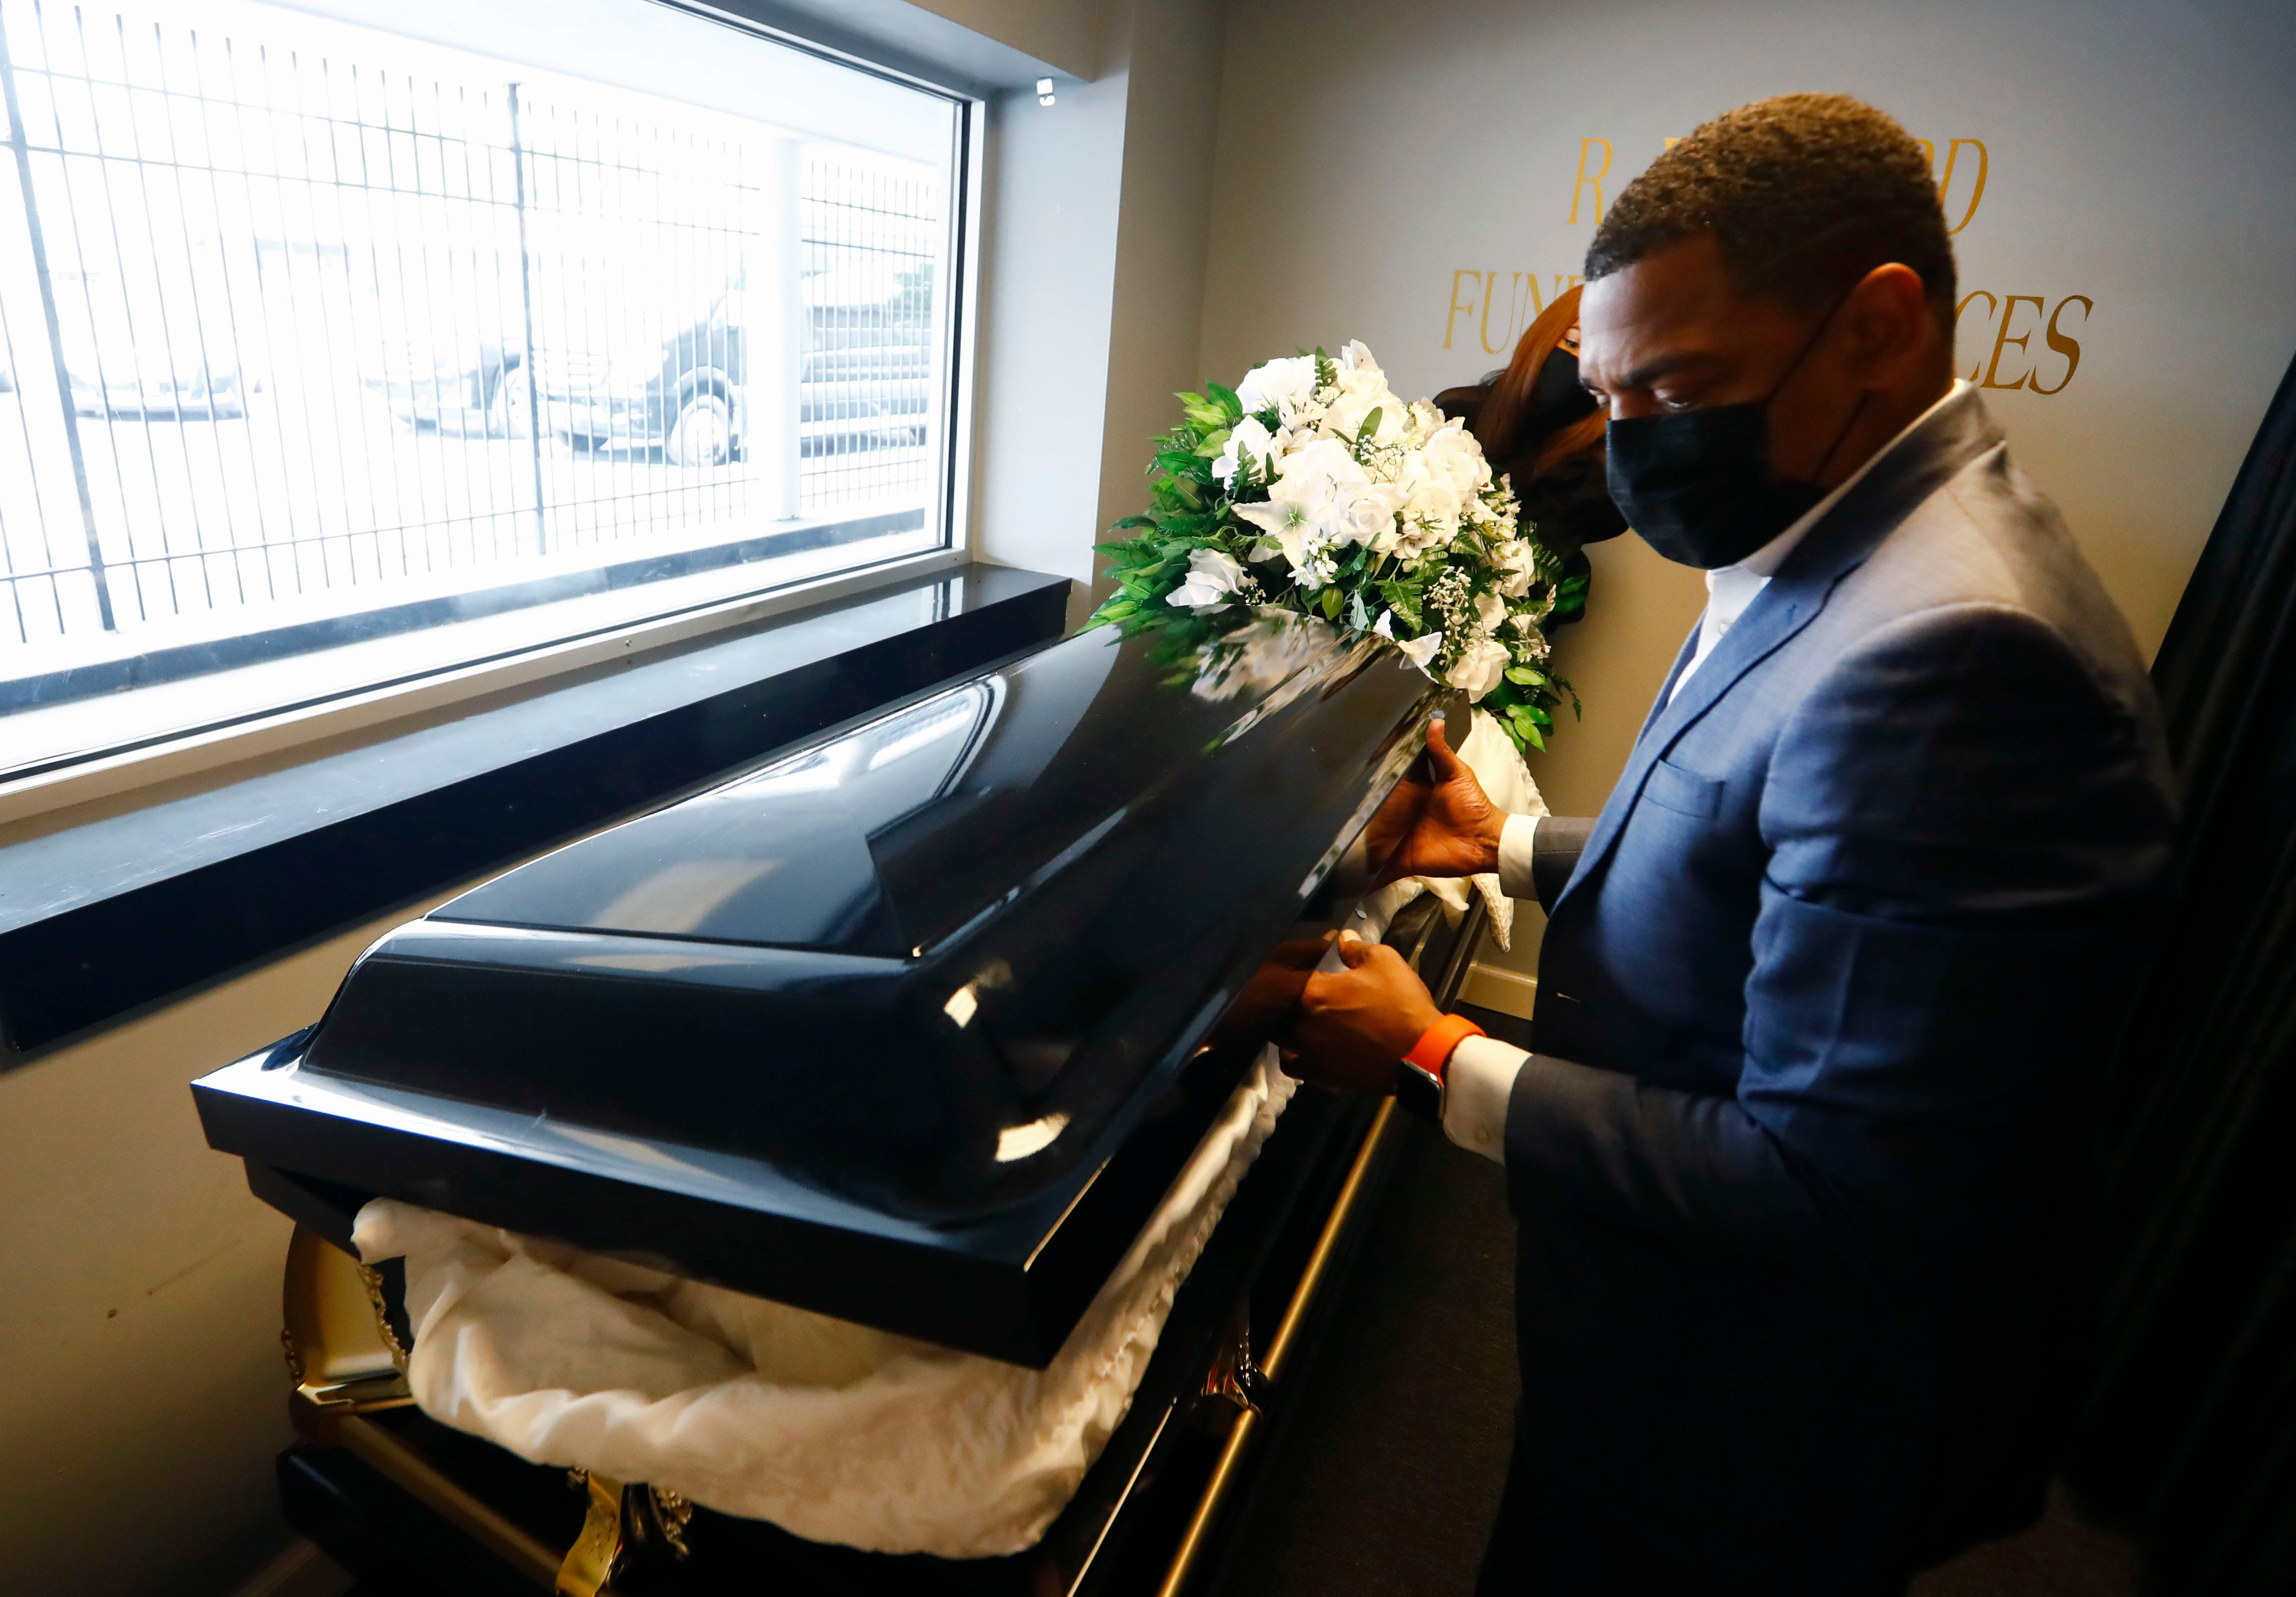 Ryan Bernard moves a casket from the funeral home's drive-thru viewing window area, which has been utilized extensively during the pandemic for socially distant celebration of life ceremonies at R Bernard Funeral Services on Sept. 1, 2020.